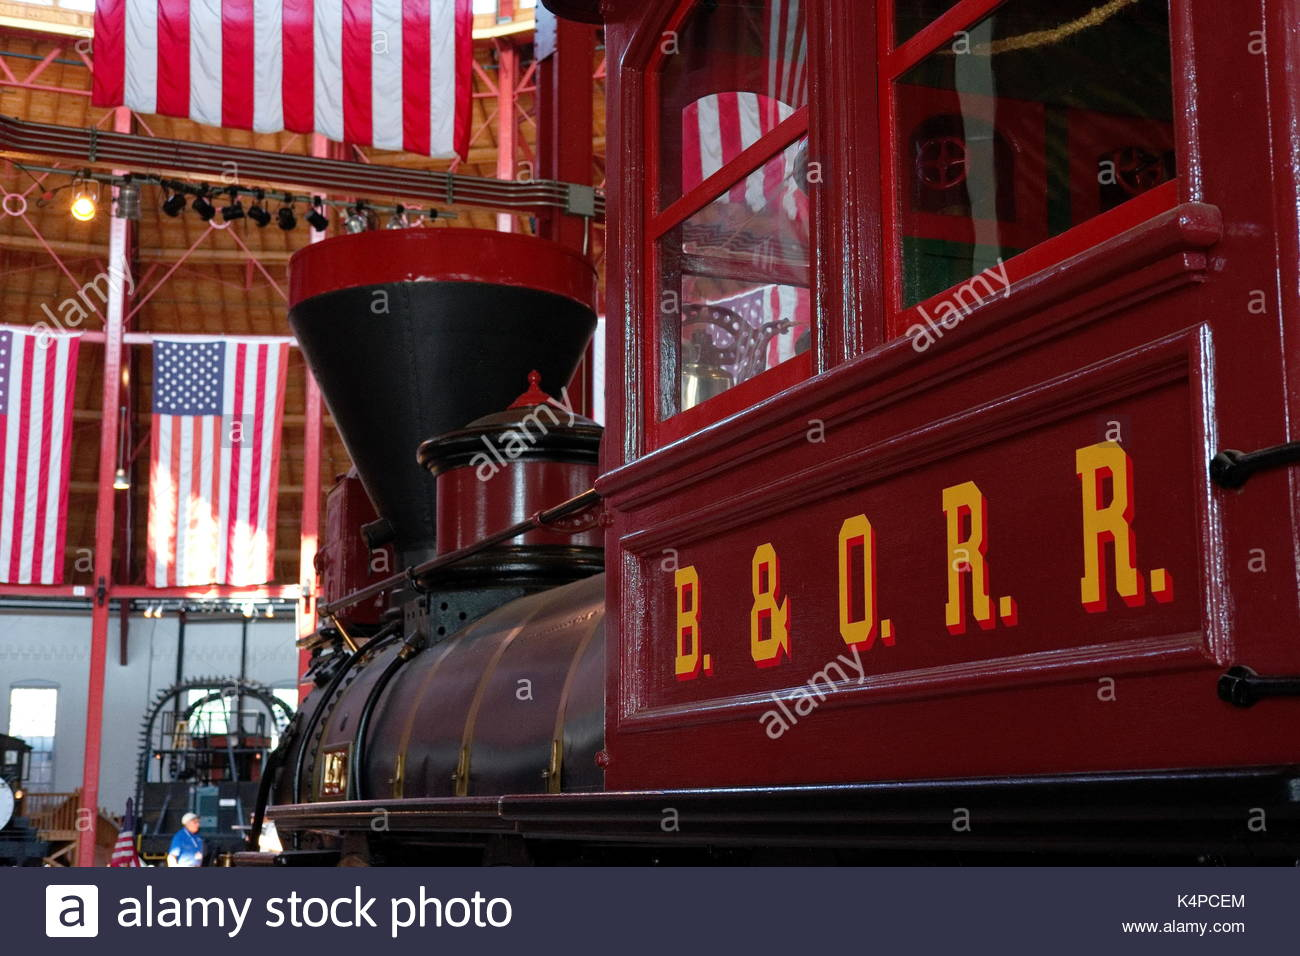 Baltimore & Ohio Railroad No. 600 2-6-0 Mogul steam locomotive on display in the roundhouse of the B&O Railroad Museum, Baltimore, Maryland, USA. - Stock Image